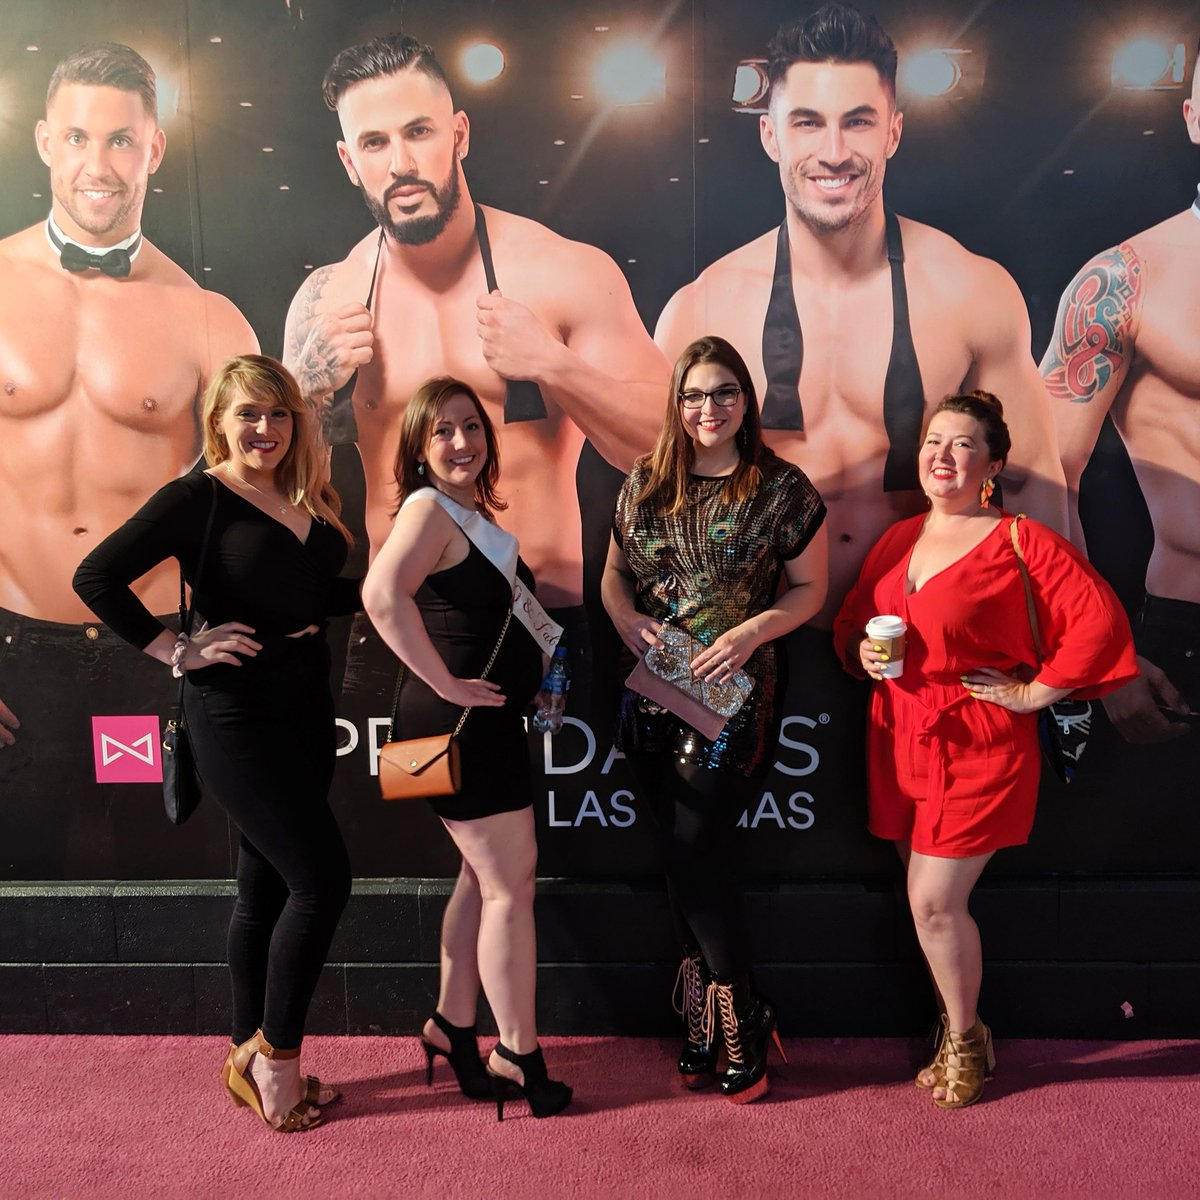 We had a different kind of dessert last night lol #chippendales #dirtythirty #vegas #birthdaysarethebest #party #outpast2